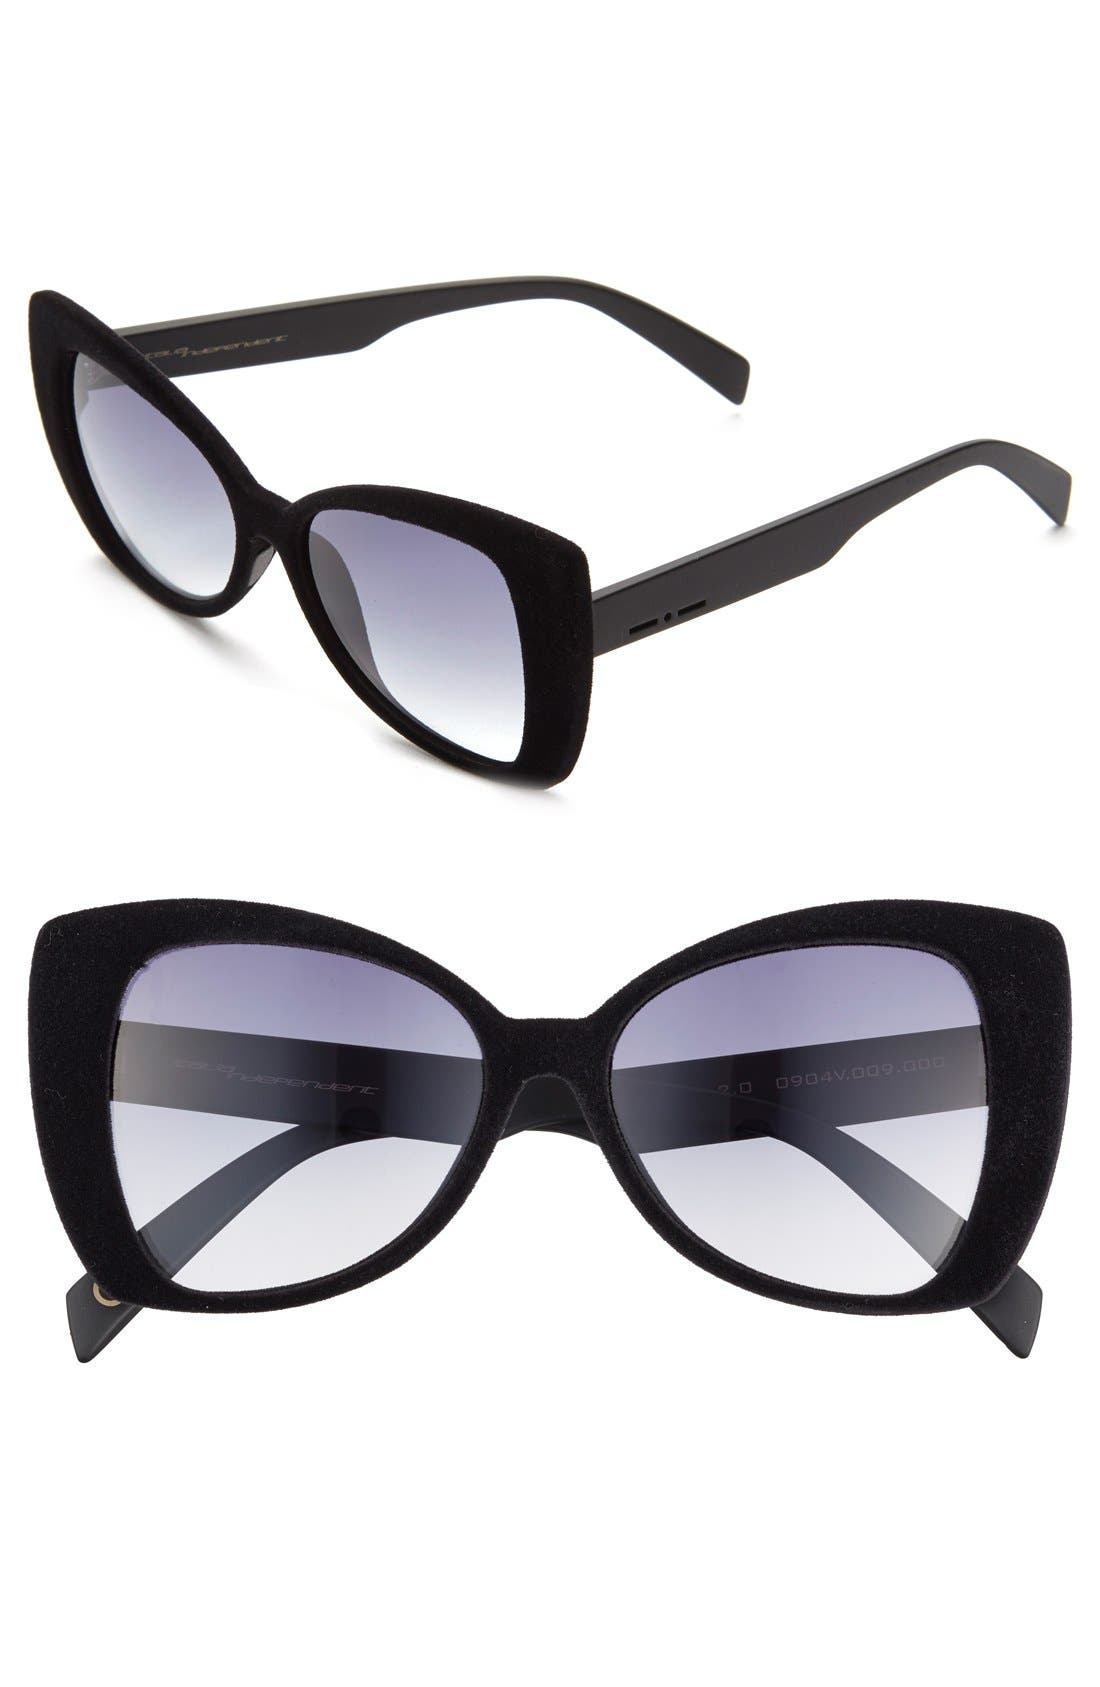 ITALIA INDEPENDENT, 'I-V' 65mm Oversize Butterfly Sunglasses, Main thumbnail 1, color, 001